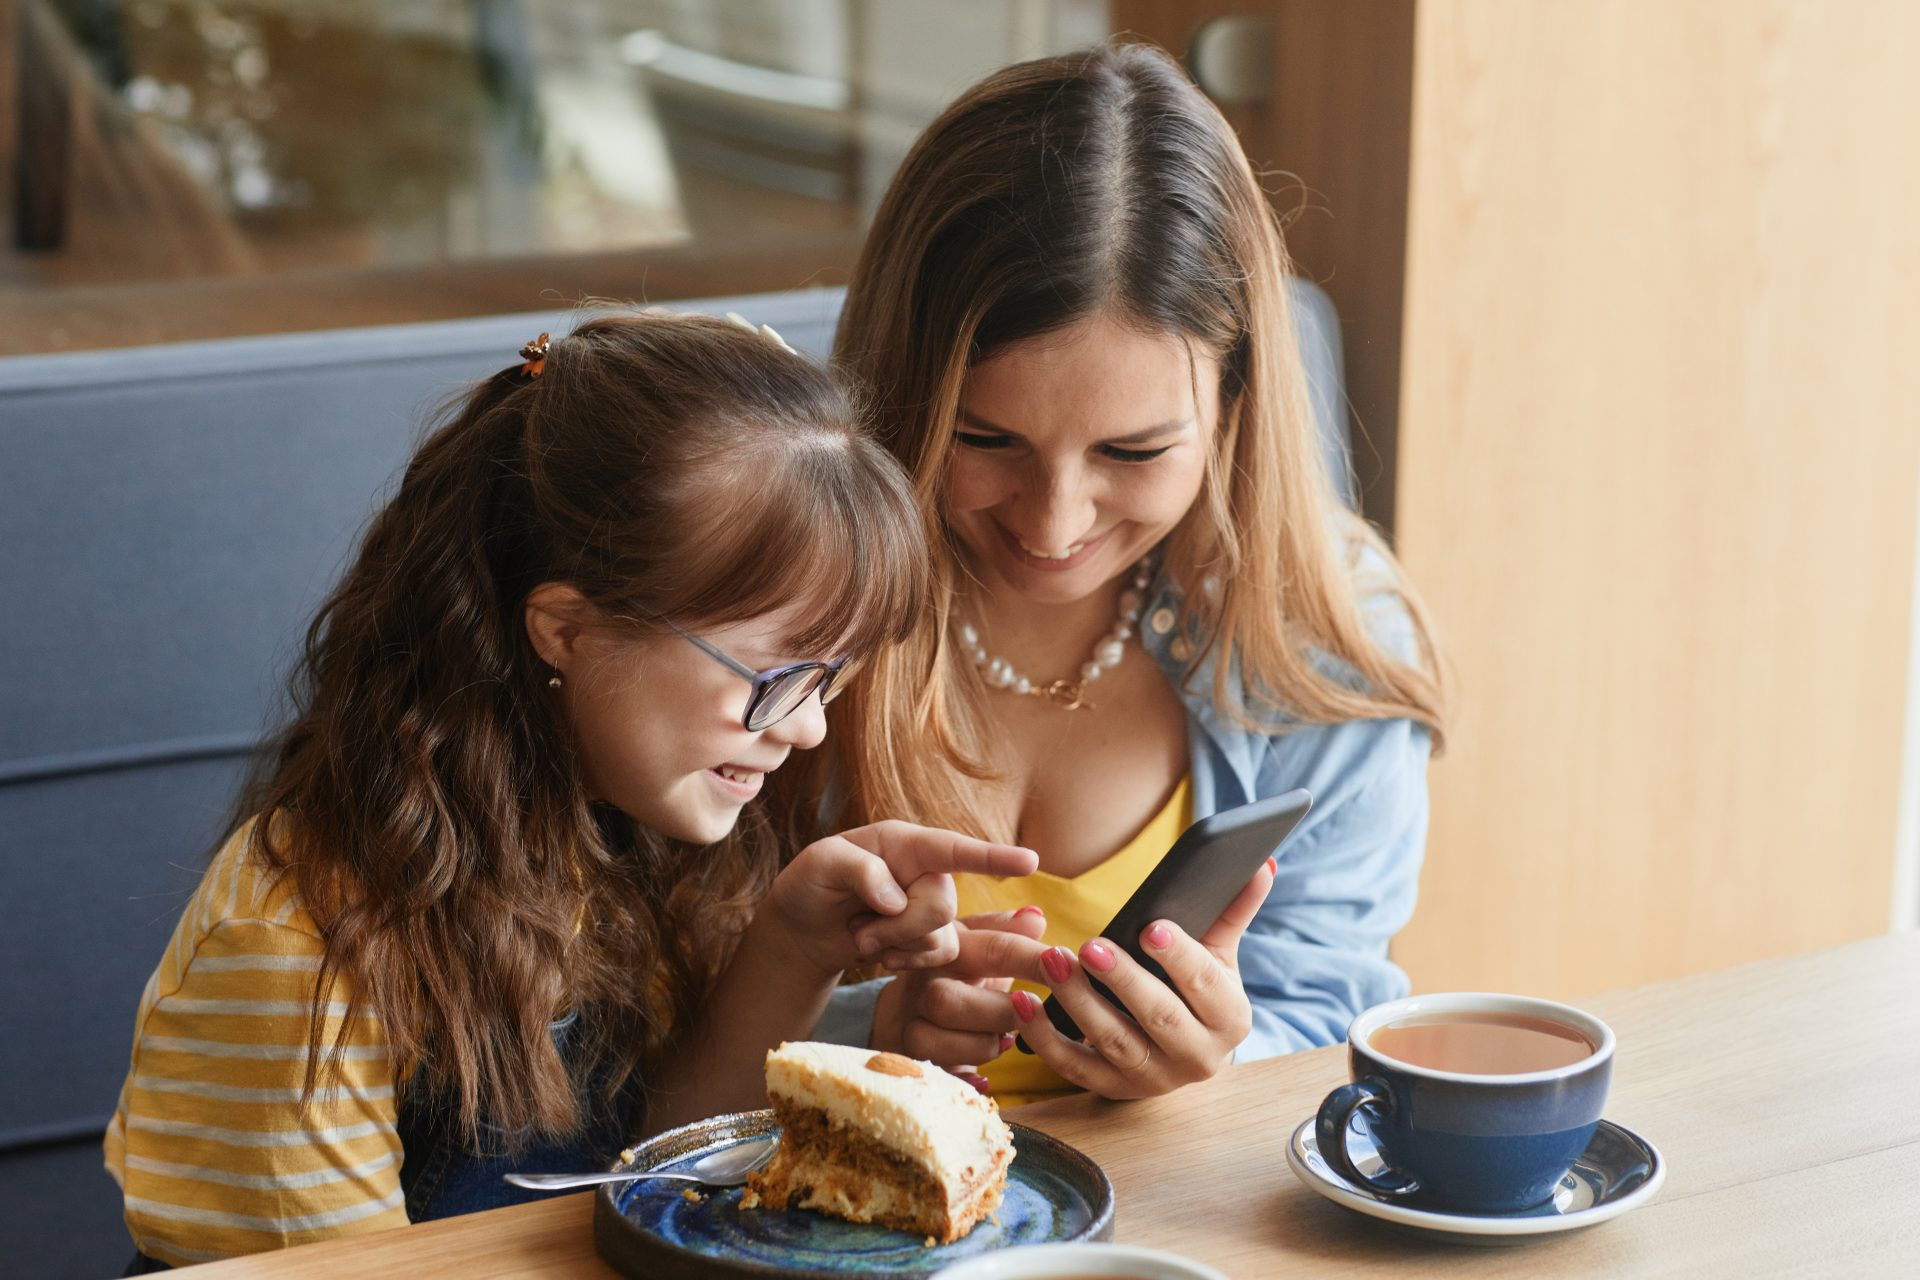 A woman and a young girl with Down syndrome are sitting in a cafe looking at a mobile phone screen together and smiling.